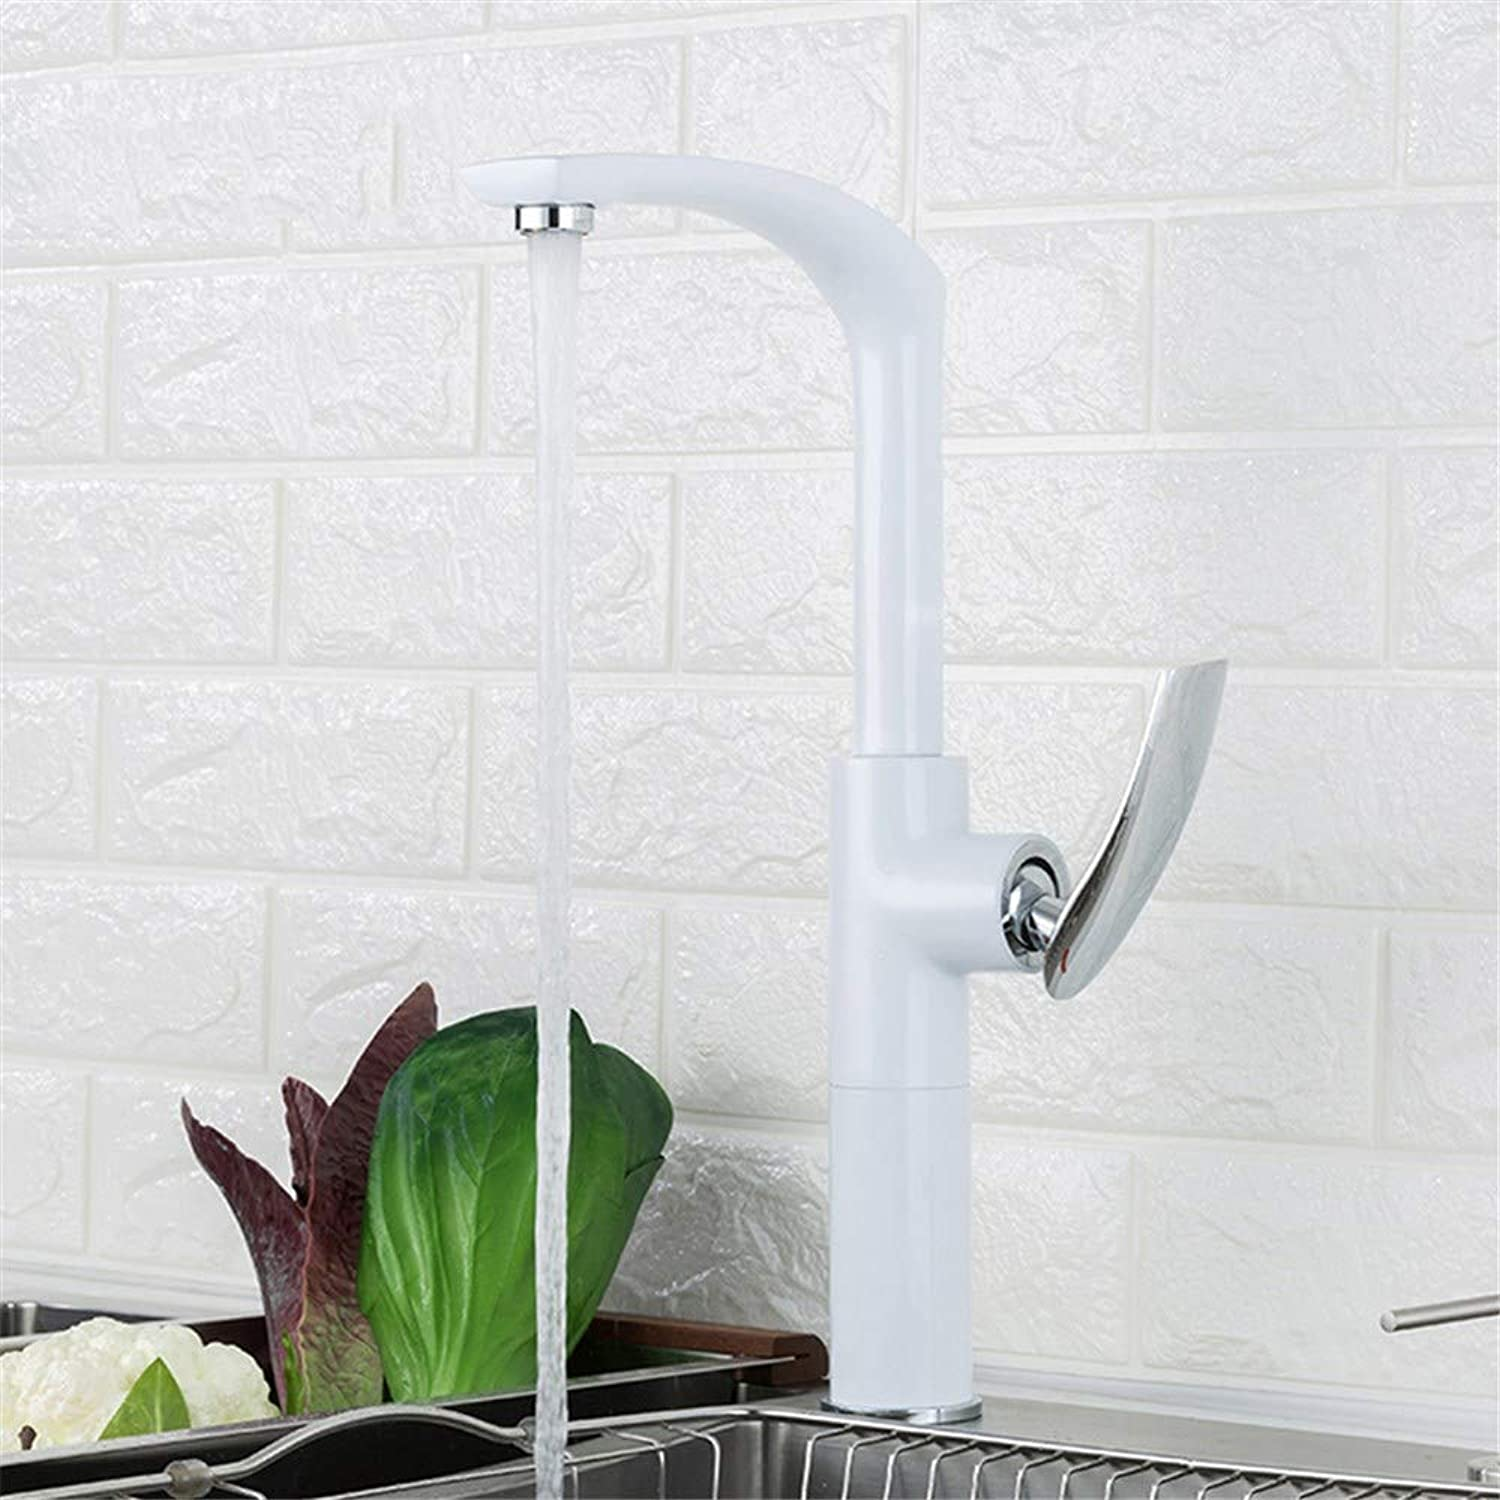 Single Handle Deck Mounted Kitchen Faucets High 360 Degree redating Mixer Basin Faucet Hot and Cold Water Faucet Y40068-2